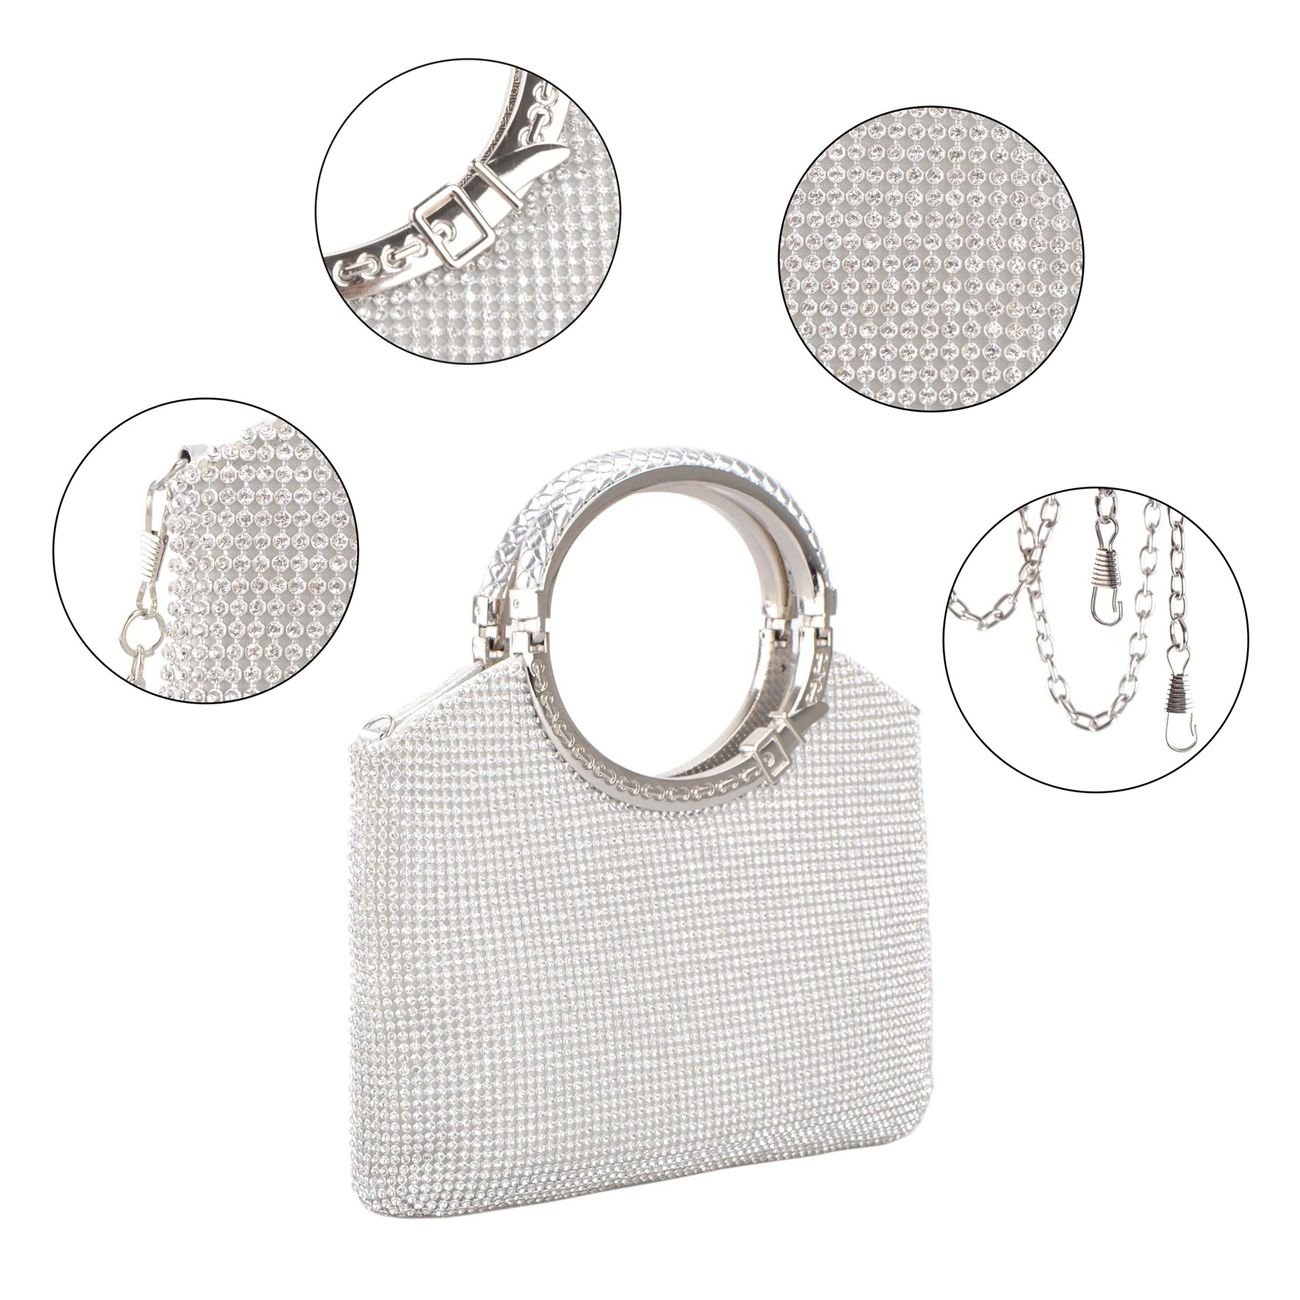 Clutch Evening Bag, Fit & Wit Giltter Beaded Flap Clutch Evening Handbag Purse (Style 1) by Fit&Wit (Image #3)